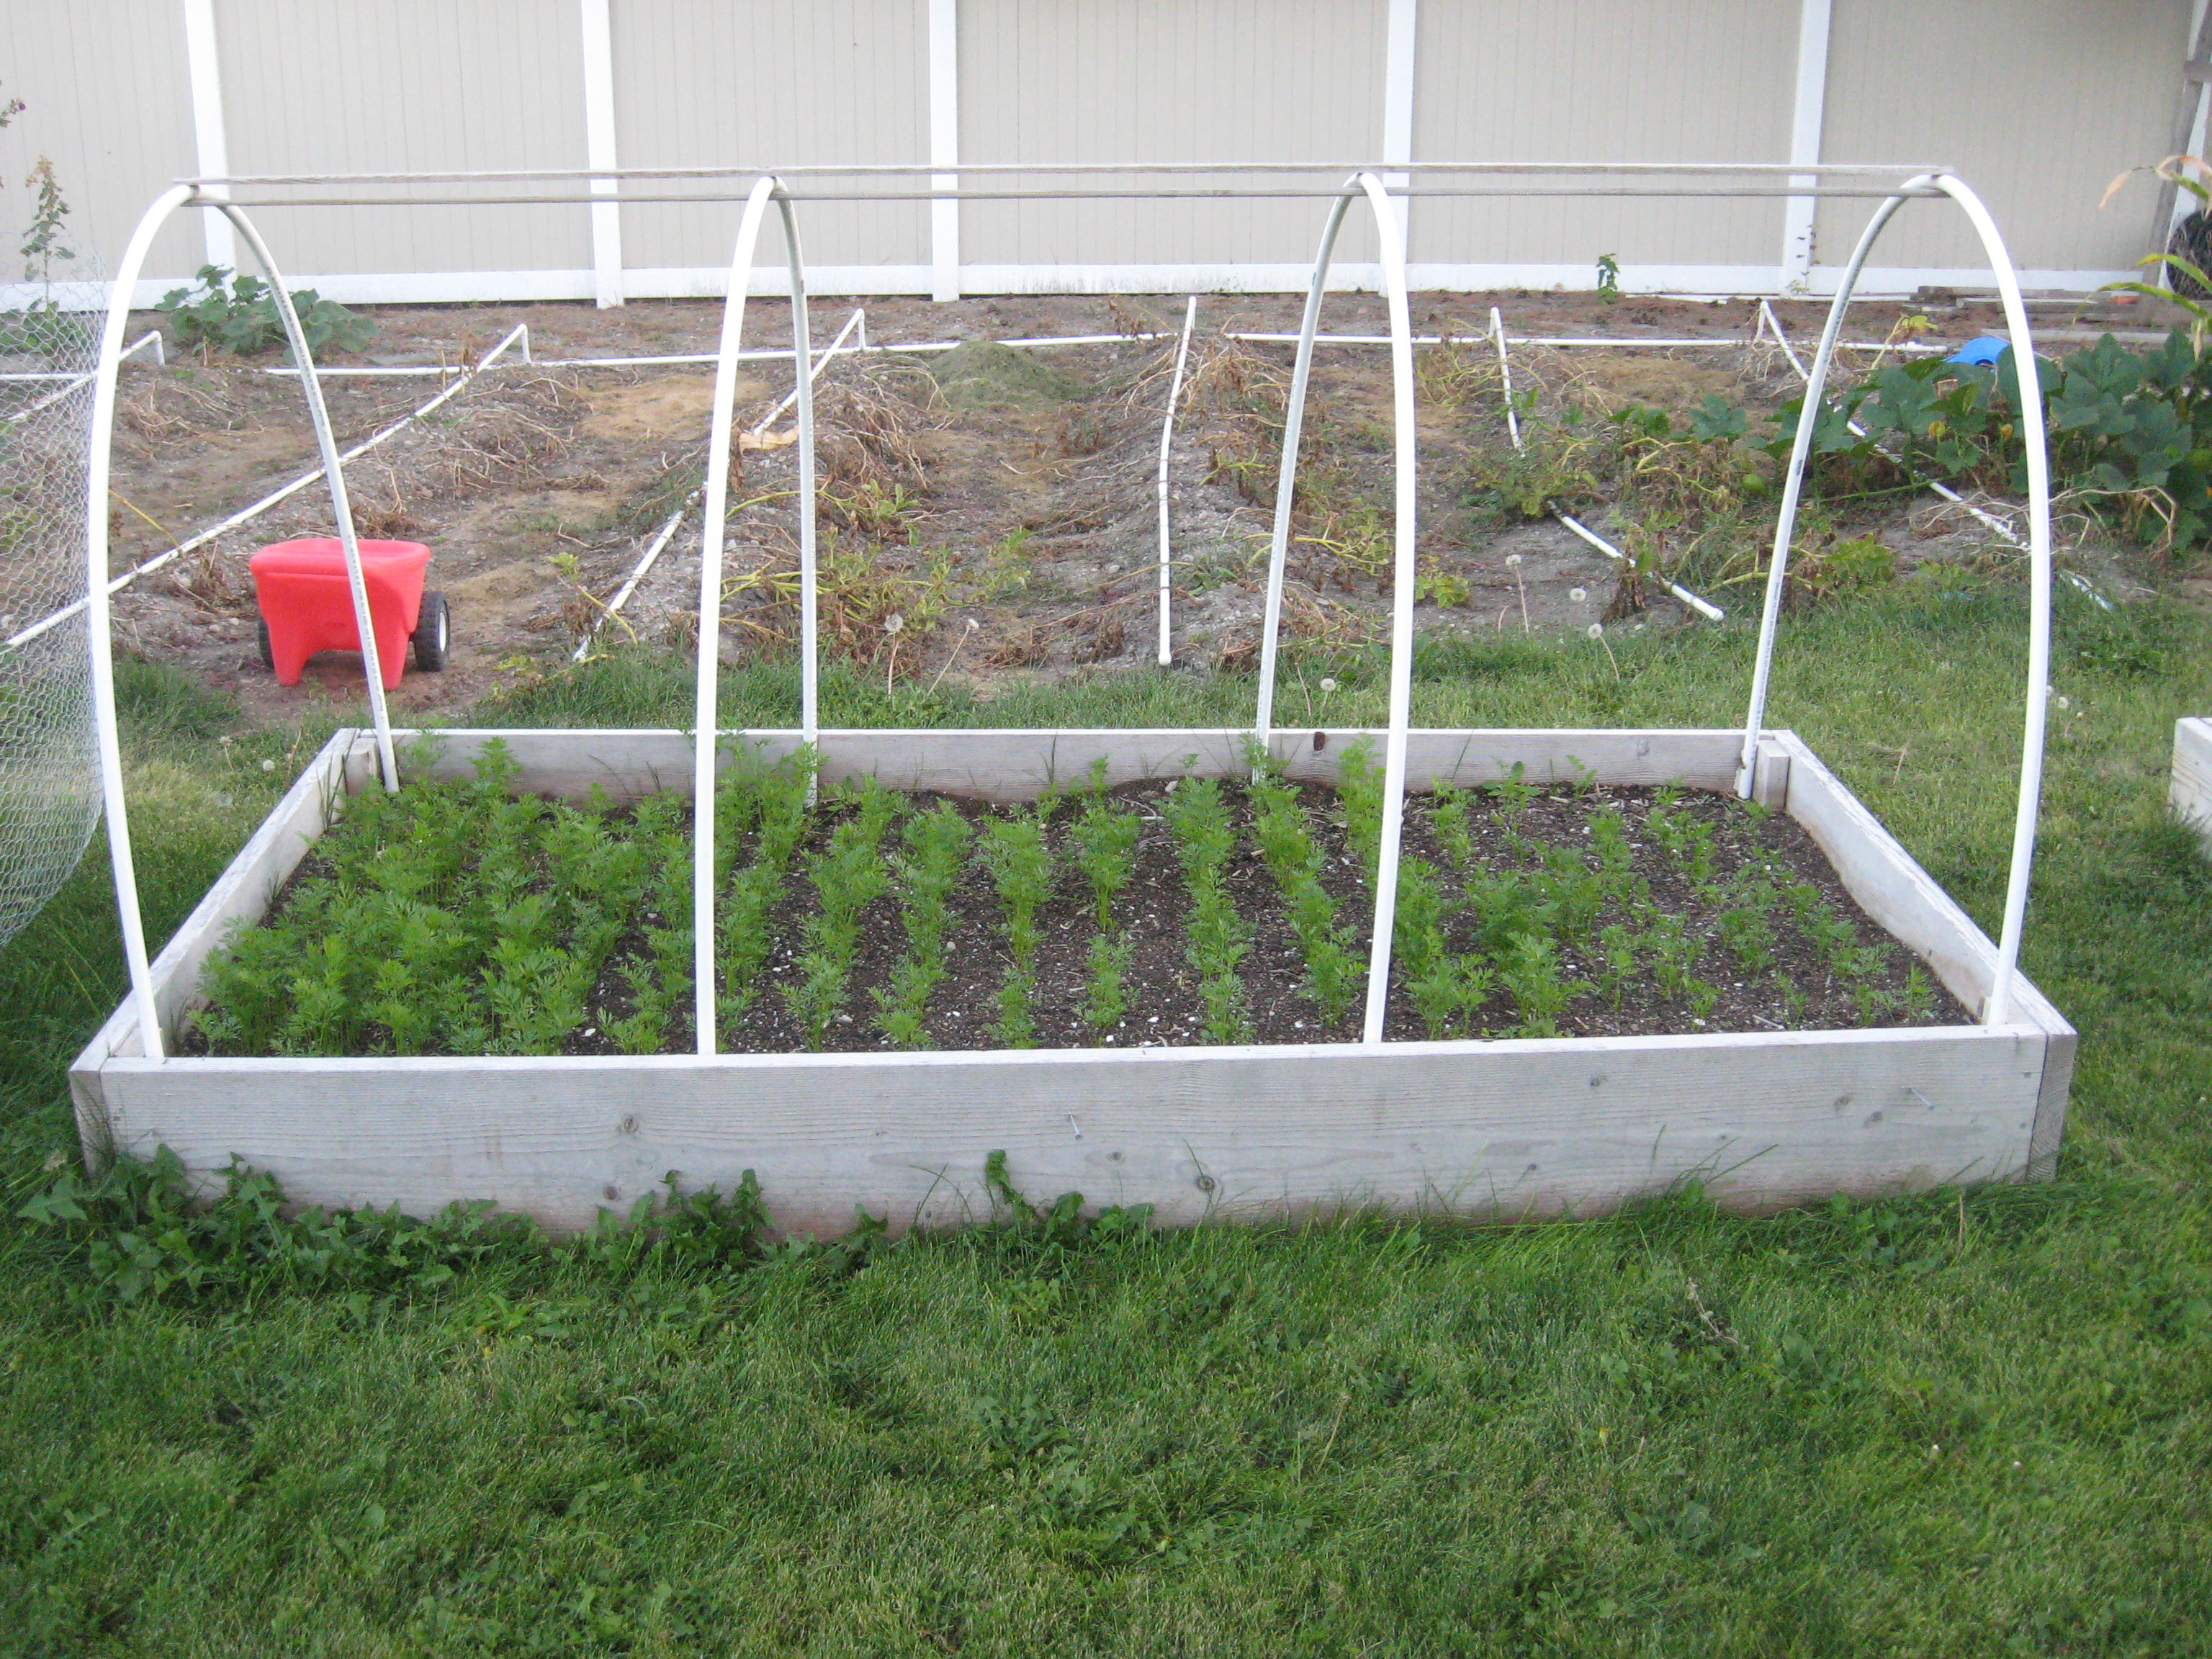 Winter Gardening Series 7 Hoop Houses